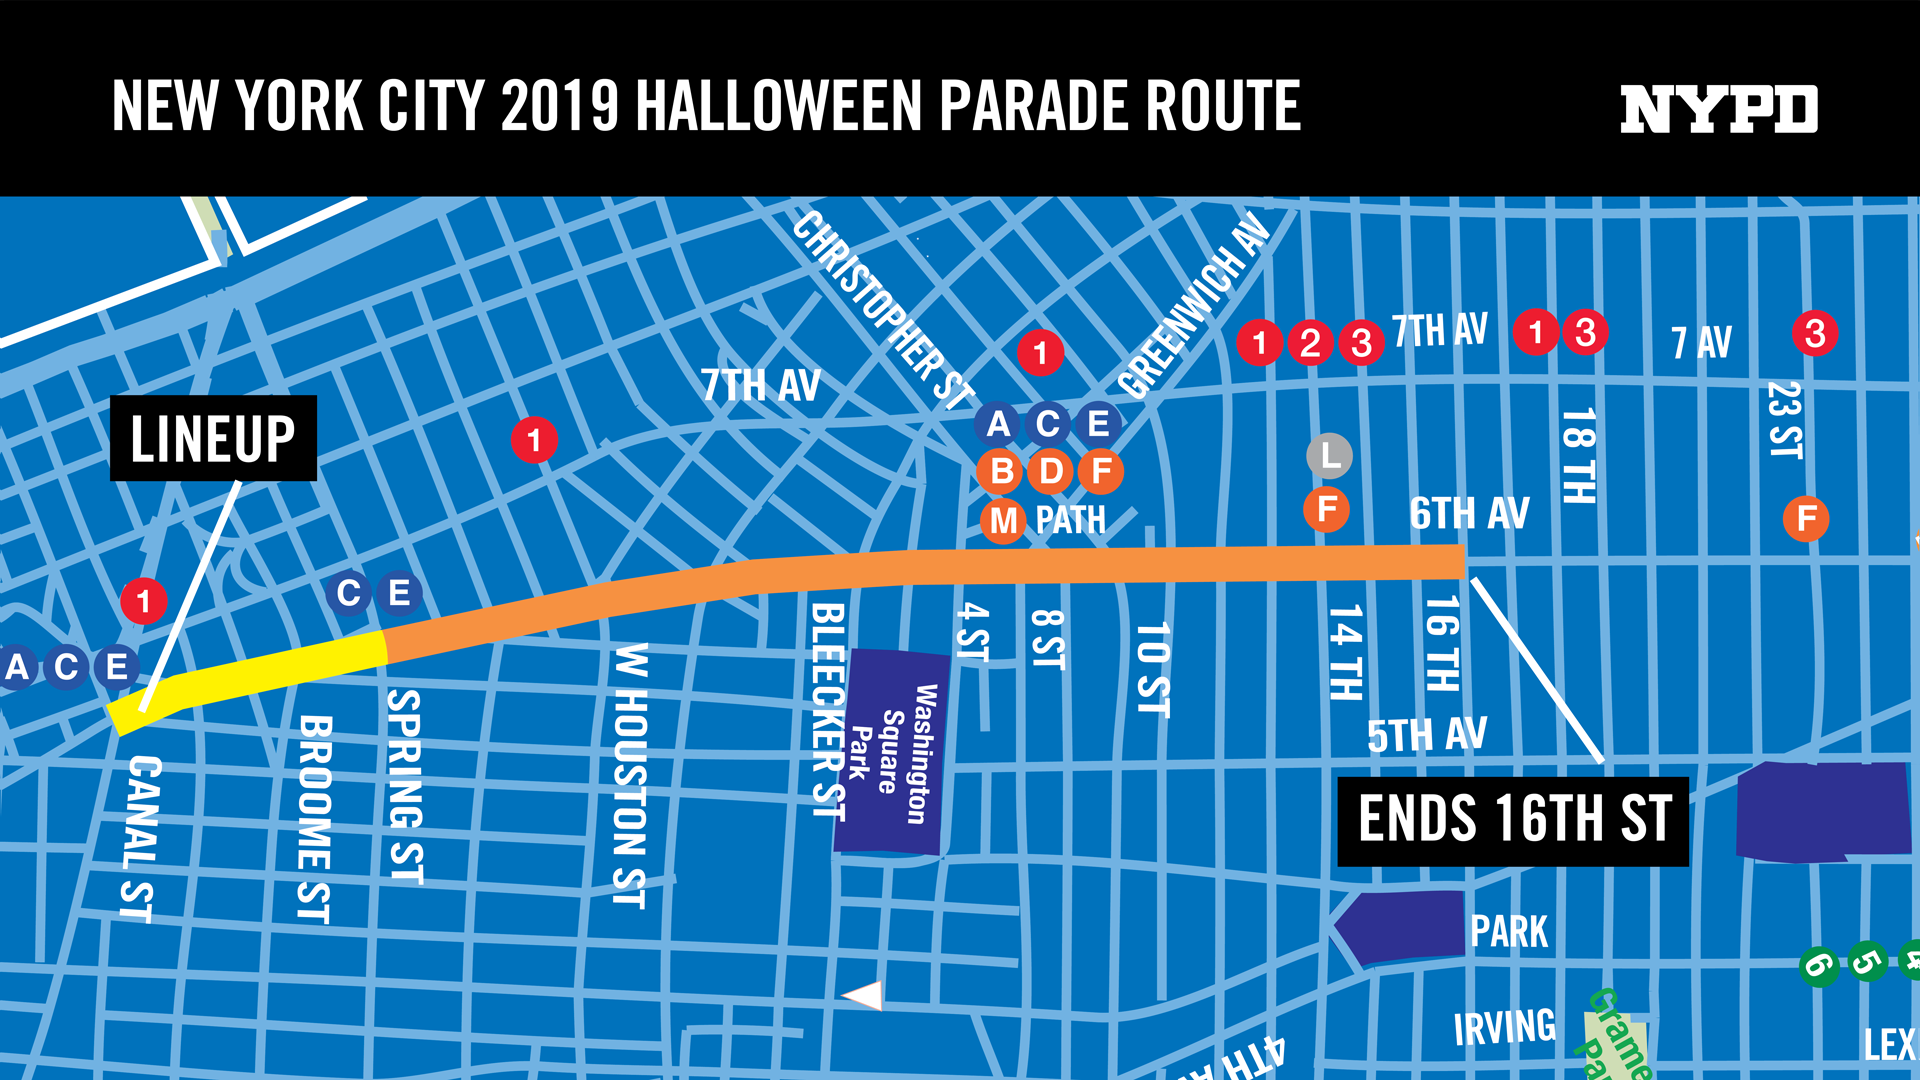 Nyc Halloween Parade Route 2020 Halloween Parade 2019 | City of New York